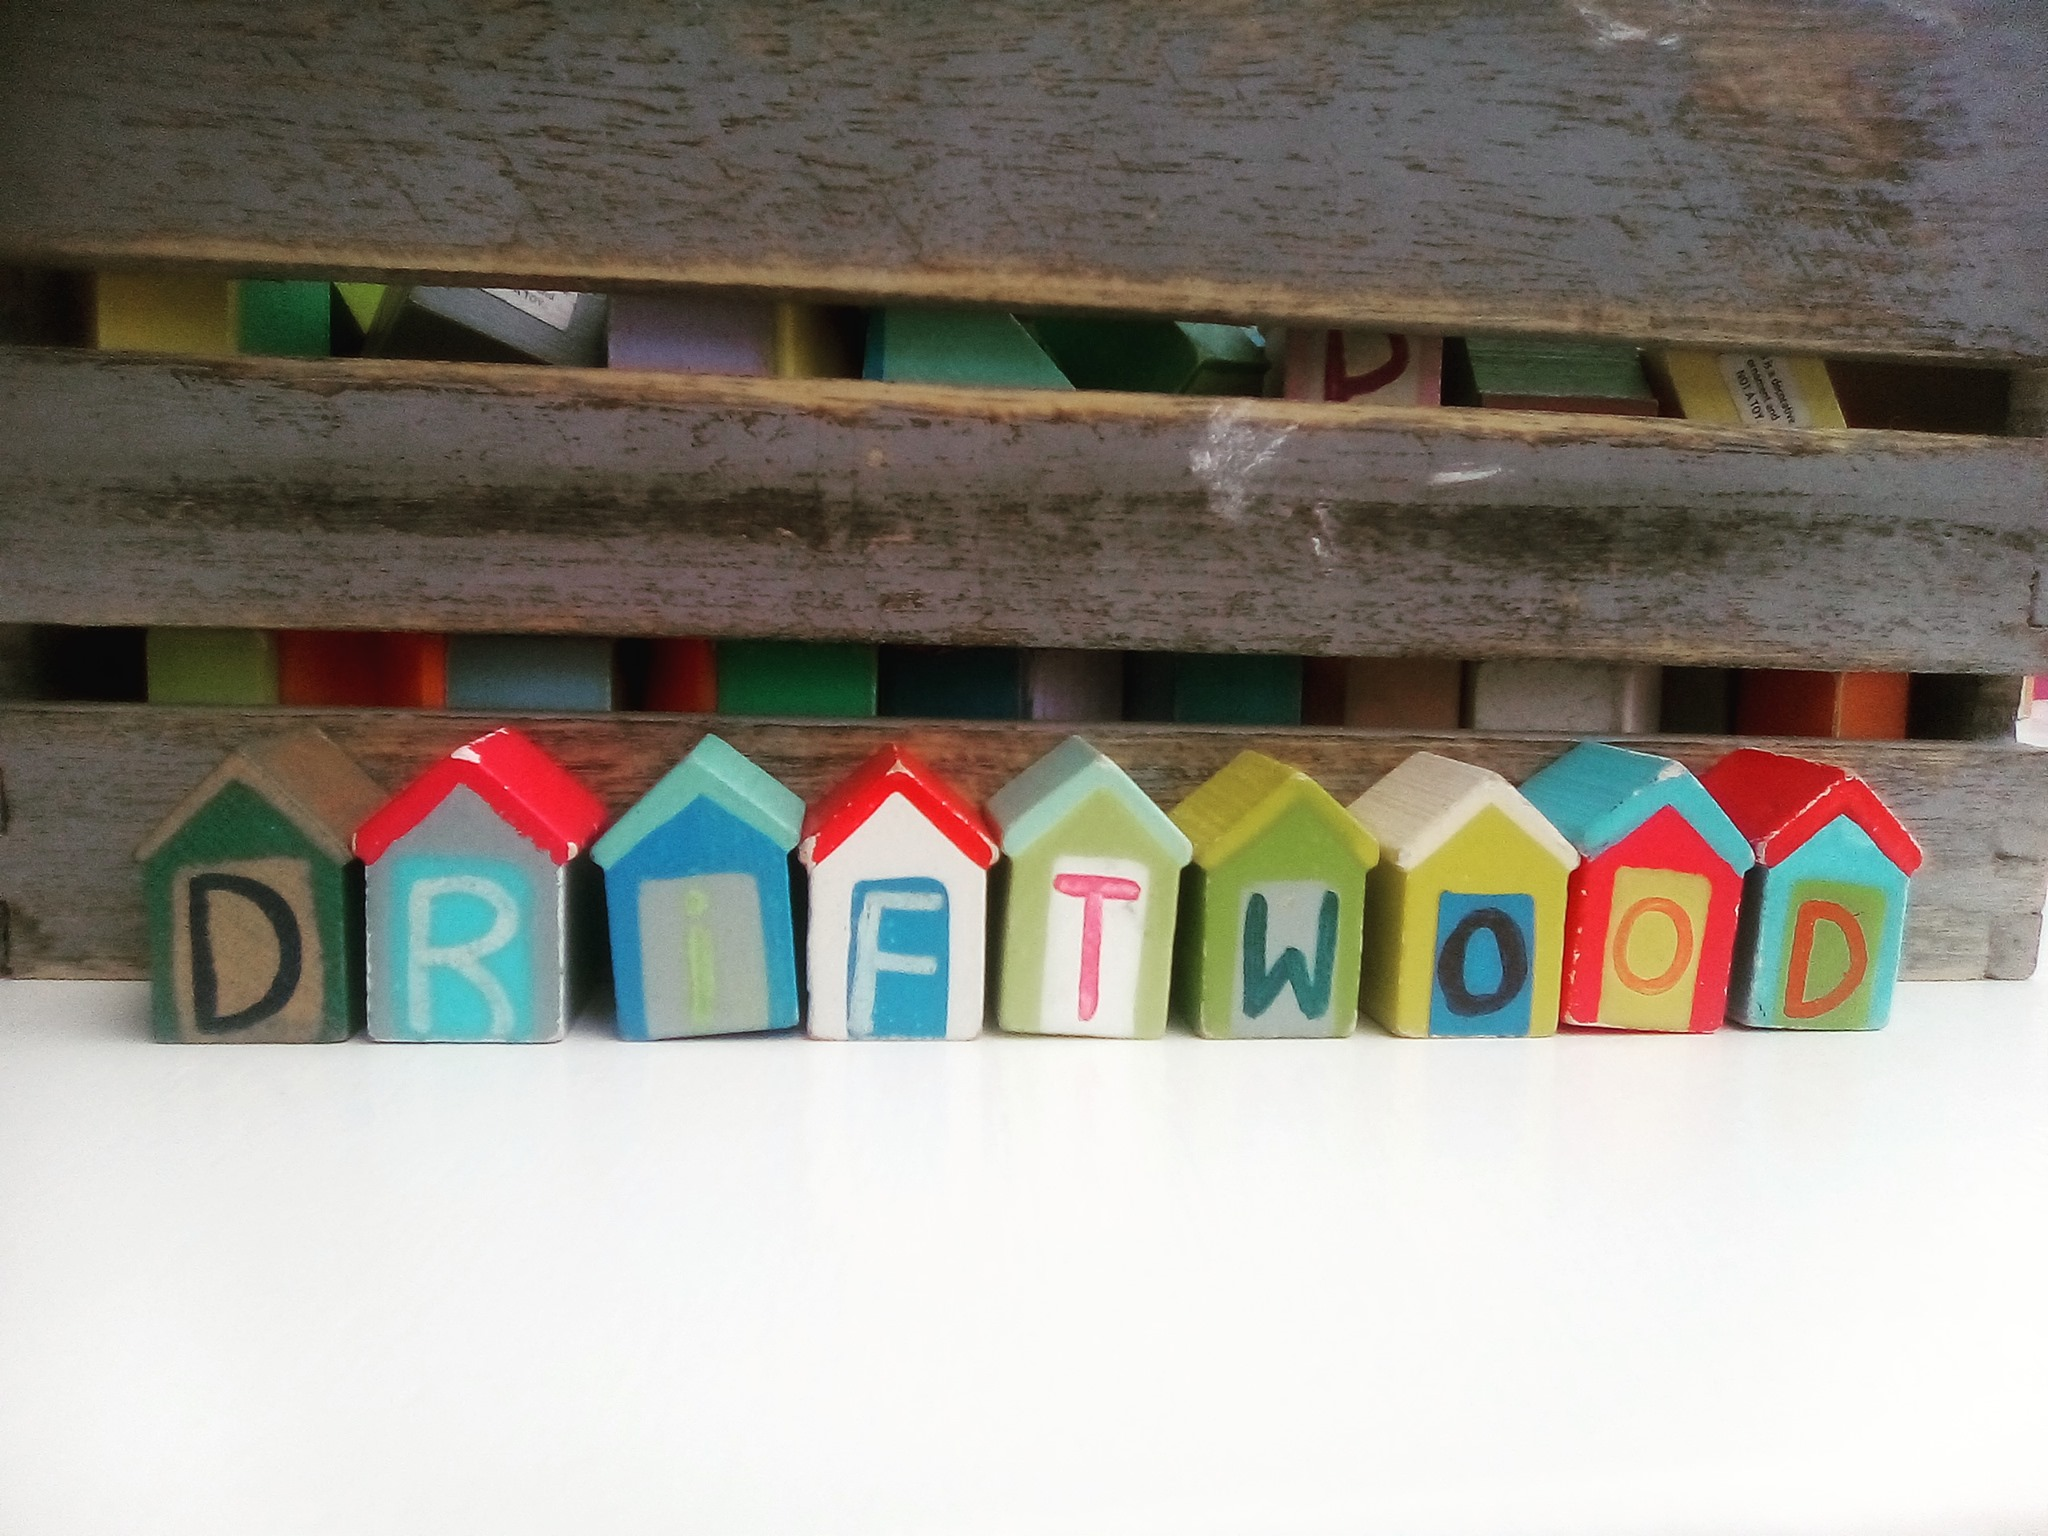 A row of colourful mini beach huts stands in front of a wooden background. Each huts spells out one letter of the word Driftwood,